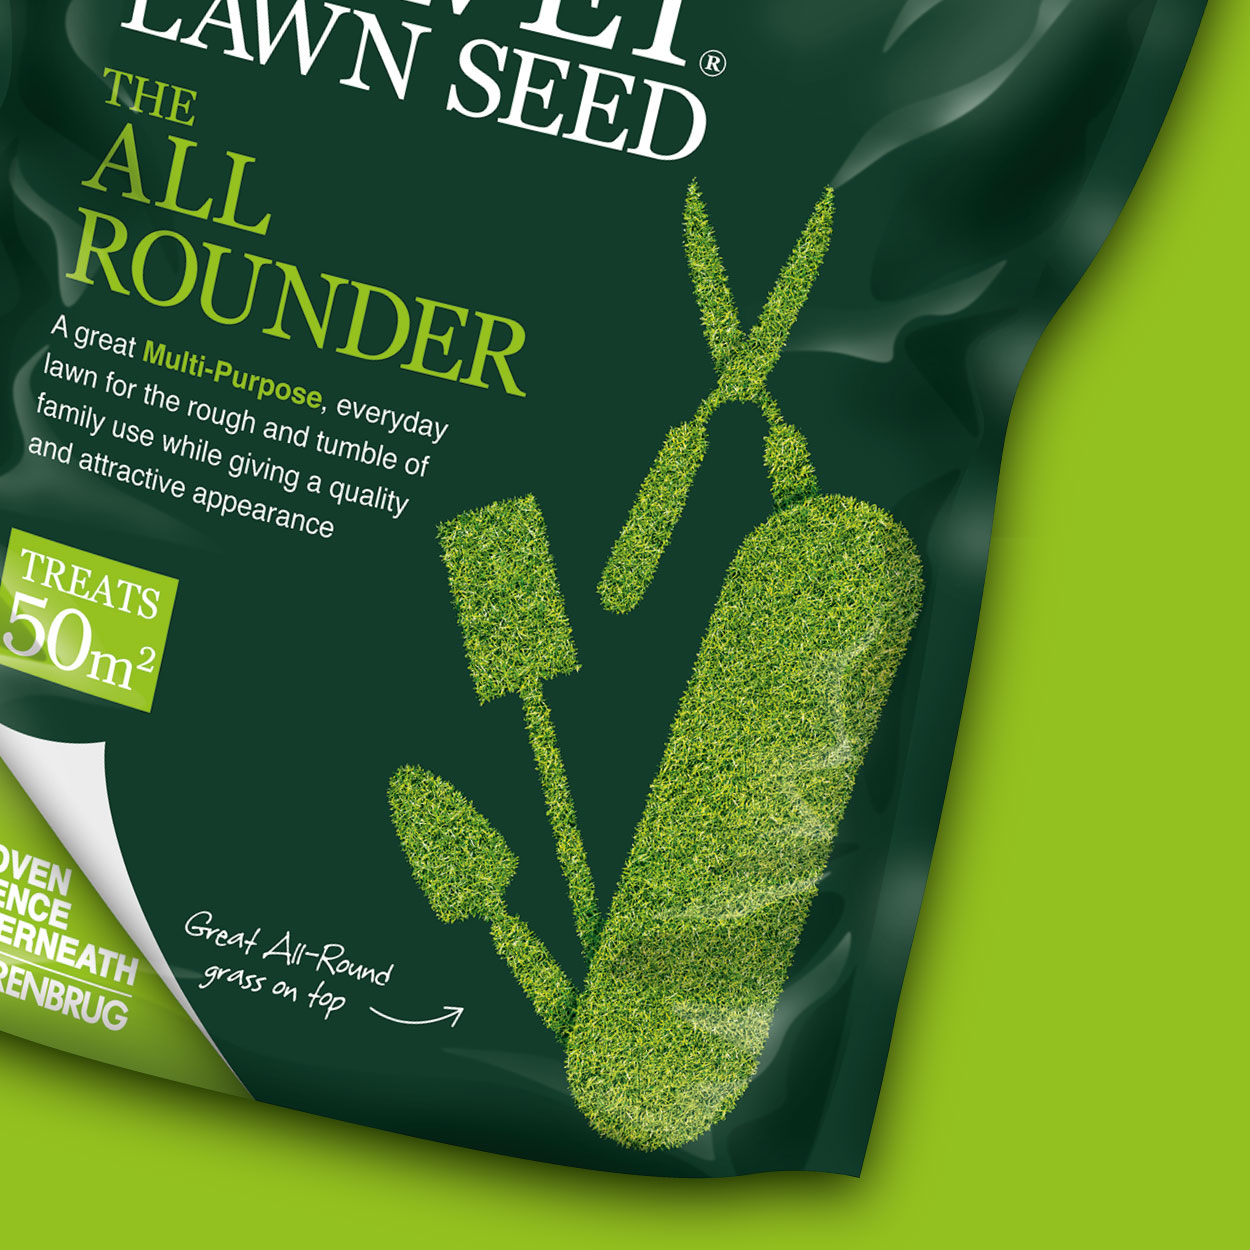 Green Velvet Lawn Seed All Rounder pouch detail